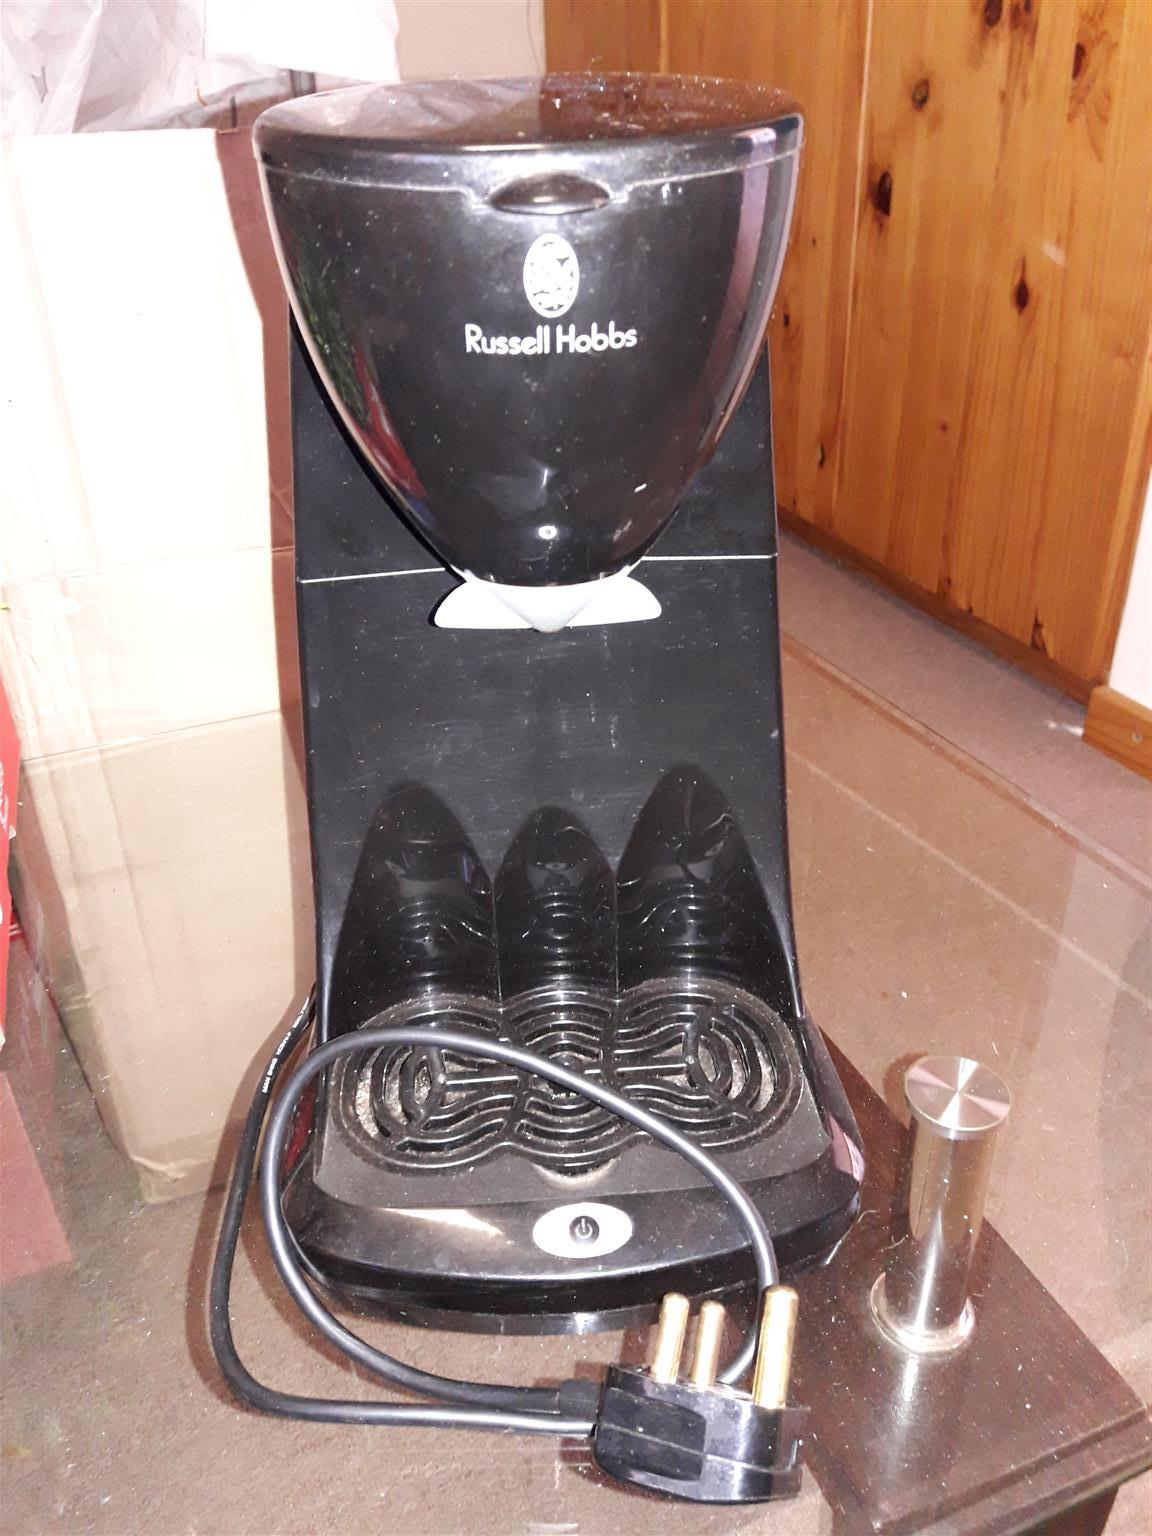 Russell Hobbs Satin Take Two 2 cup coffee/tea maker